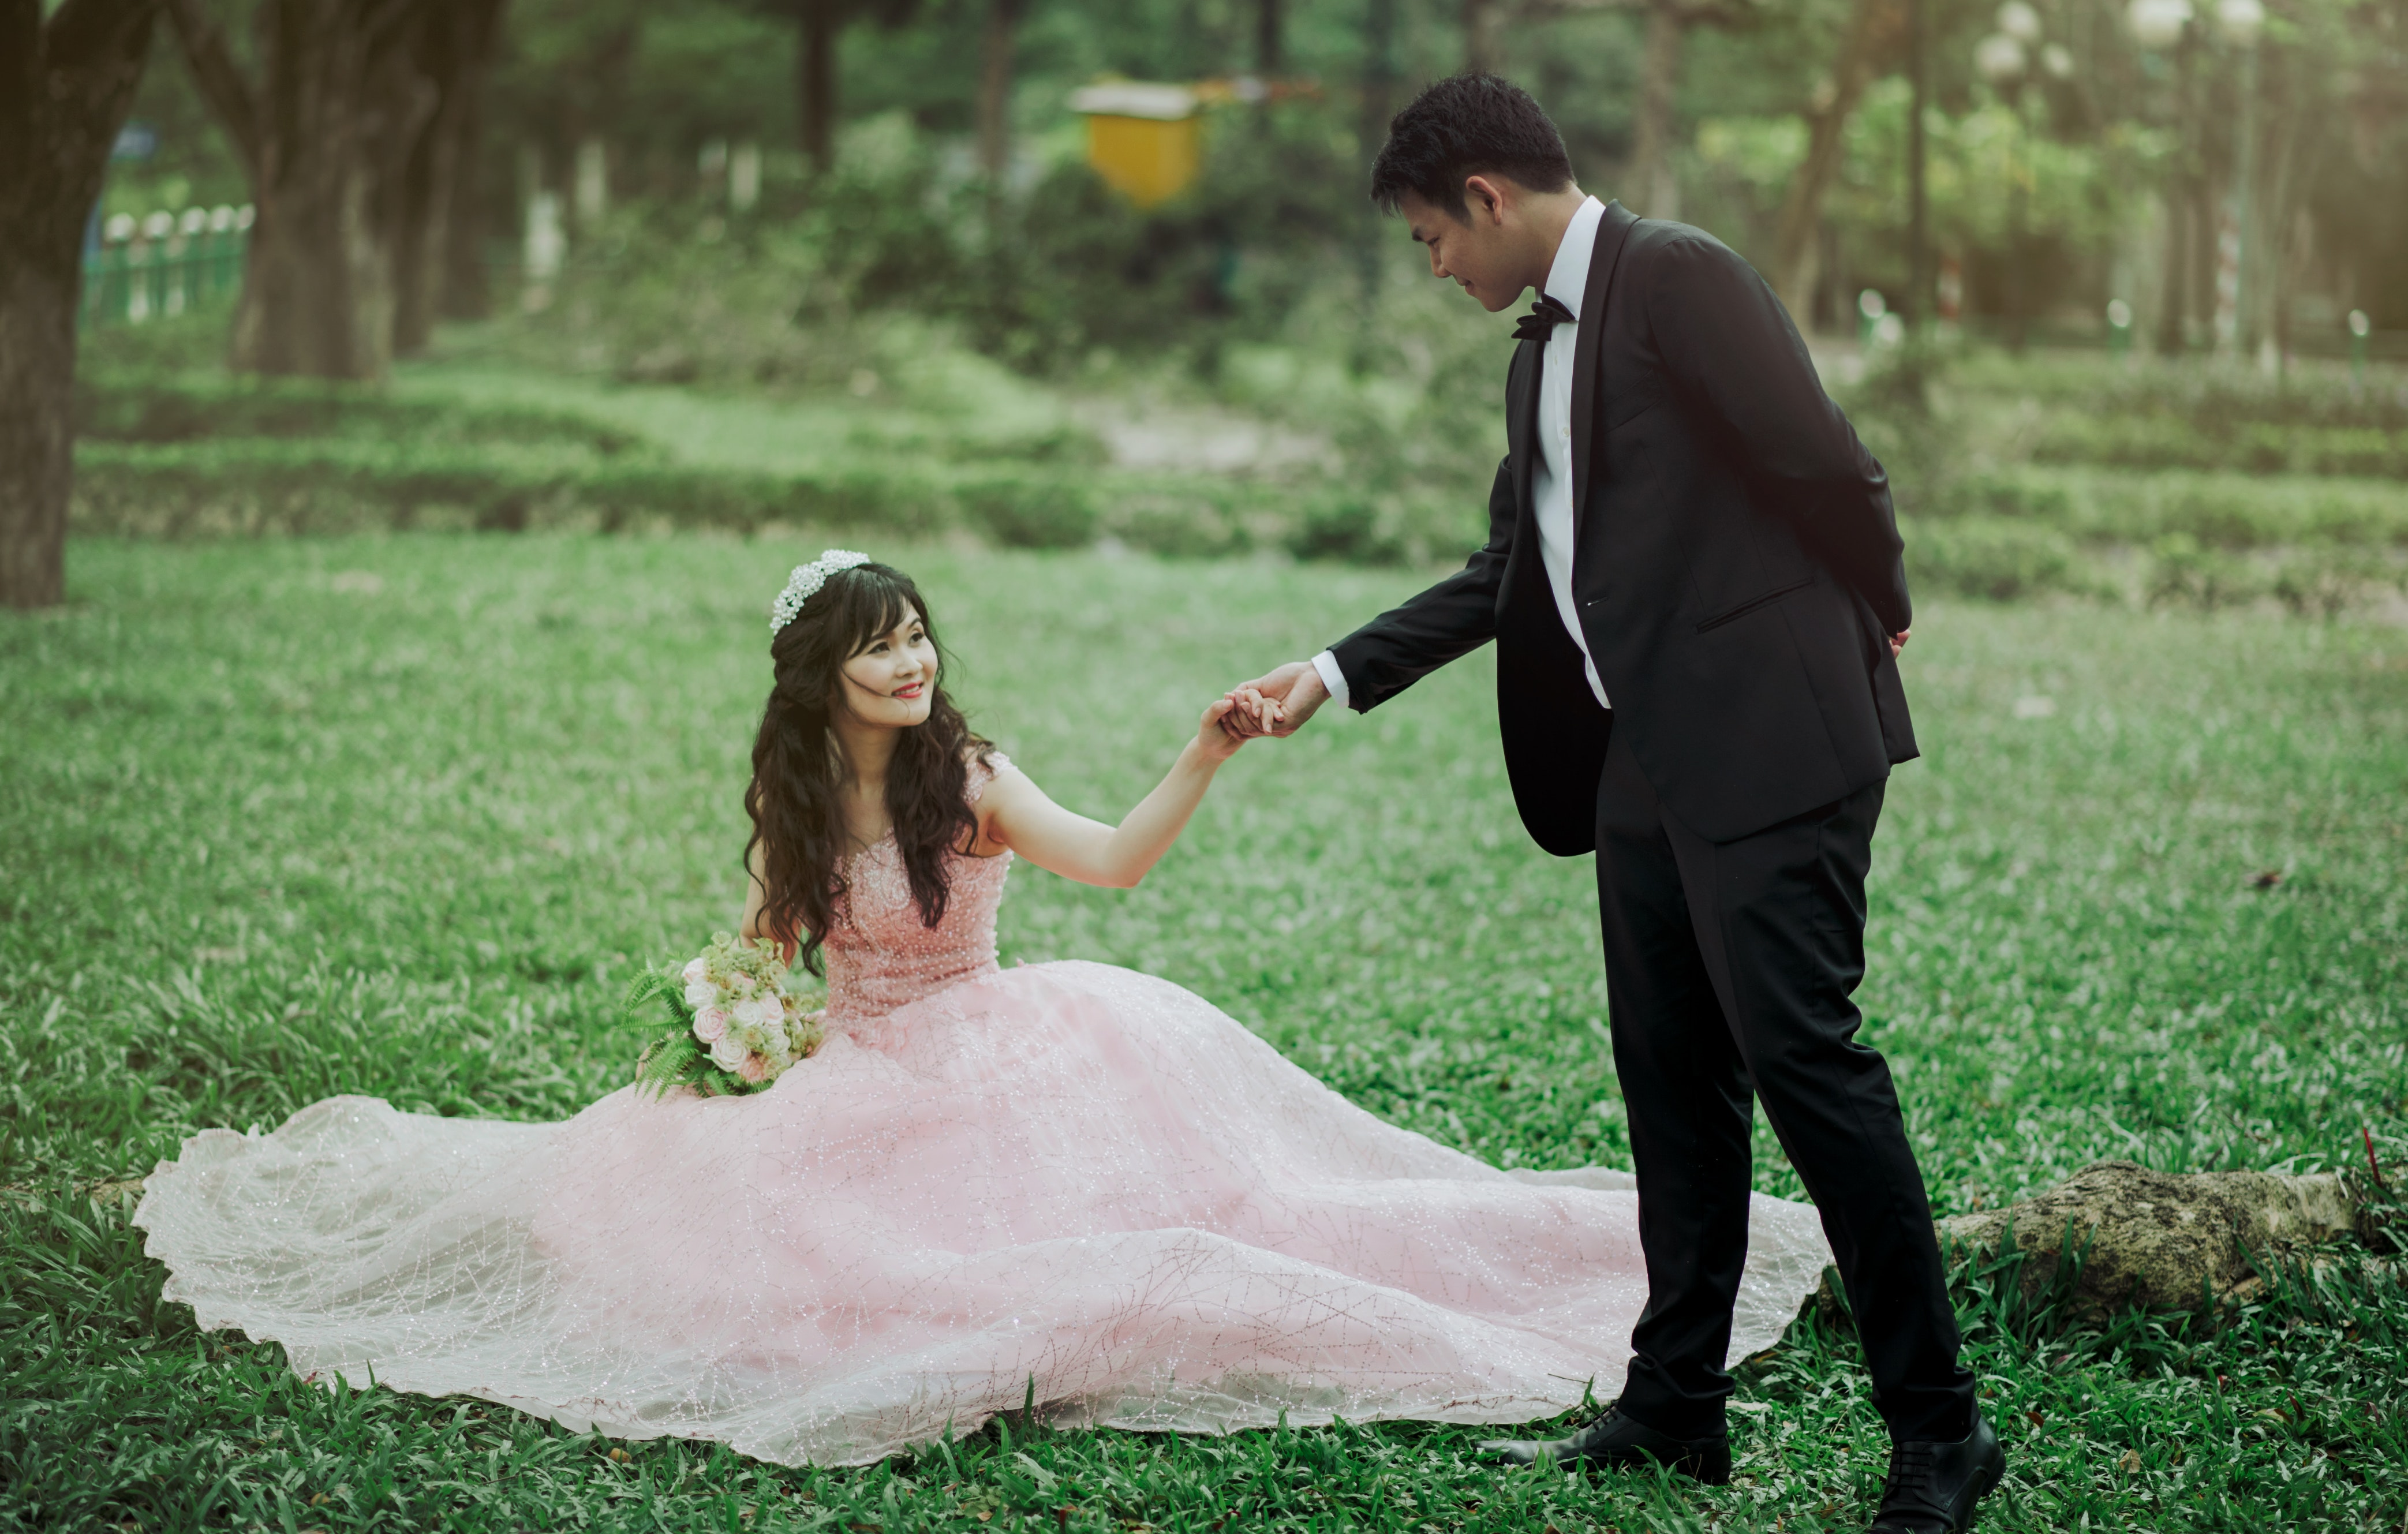 Man in 2-piece suit holding woman in peach-colored wedding gown white holding her flower bouquet photo